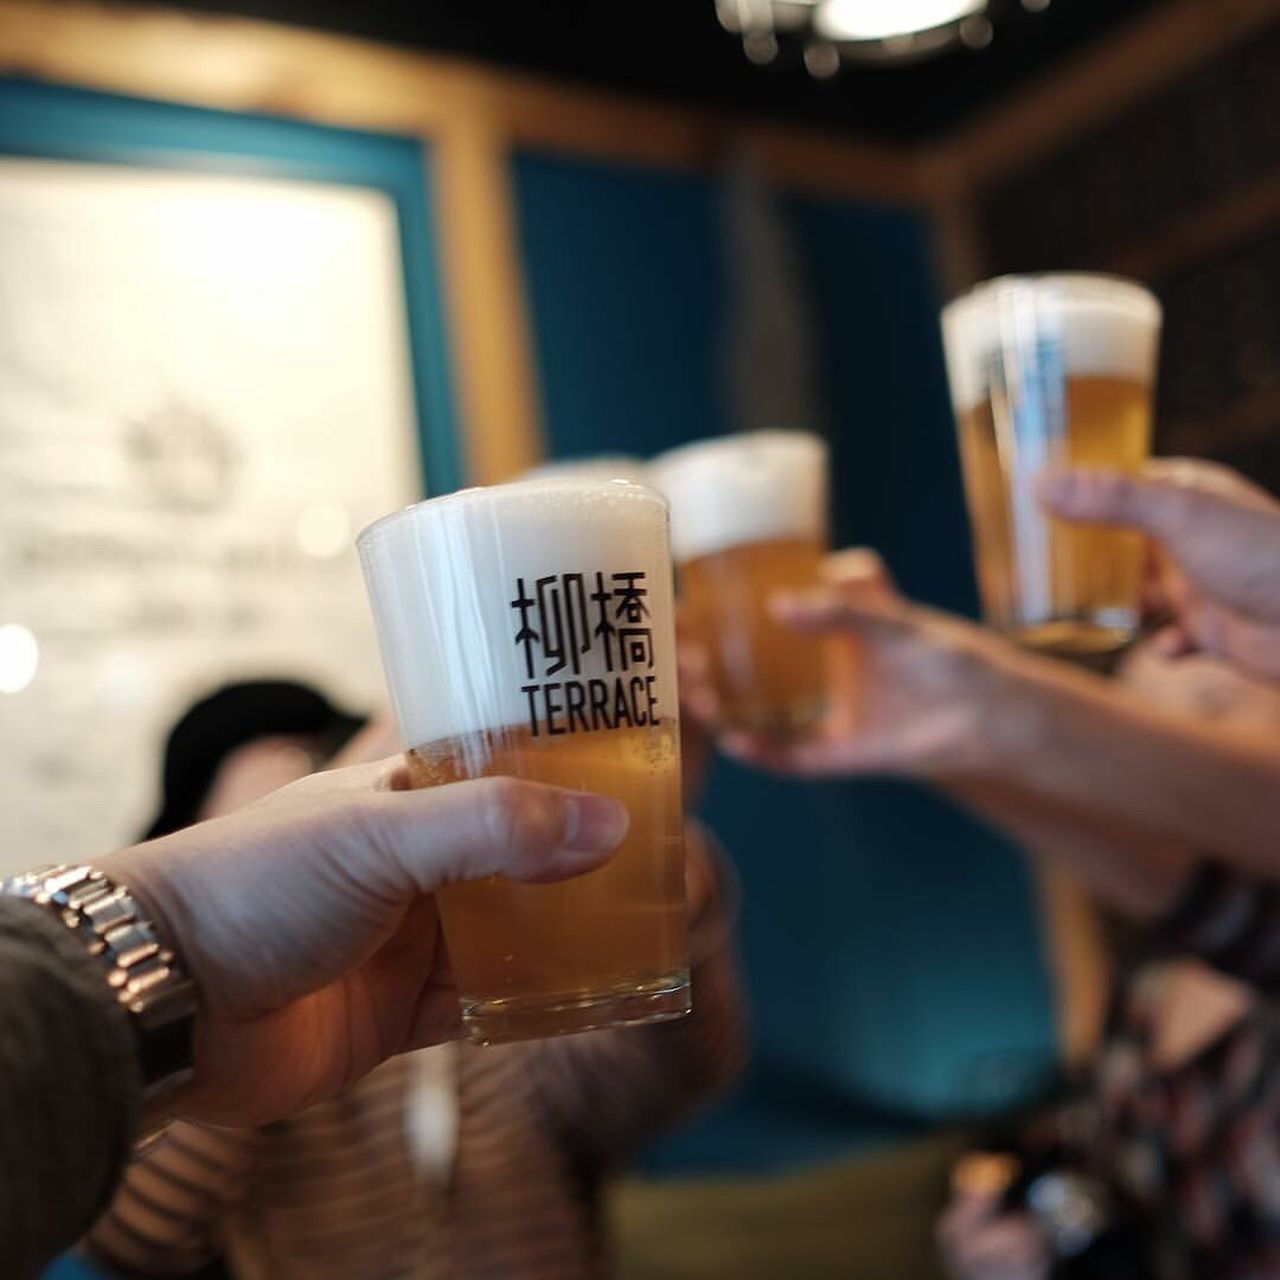 drink, human hand, refreshment, food and drink, beer glass, beer - alcohol, alcohol, holding, drinking glass, human body part, focus on foreground, indoors, real people, close-up, men, one person, frothy drink, freshness, day, people